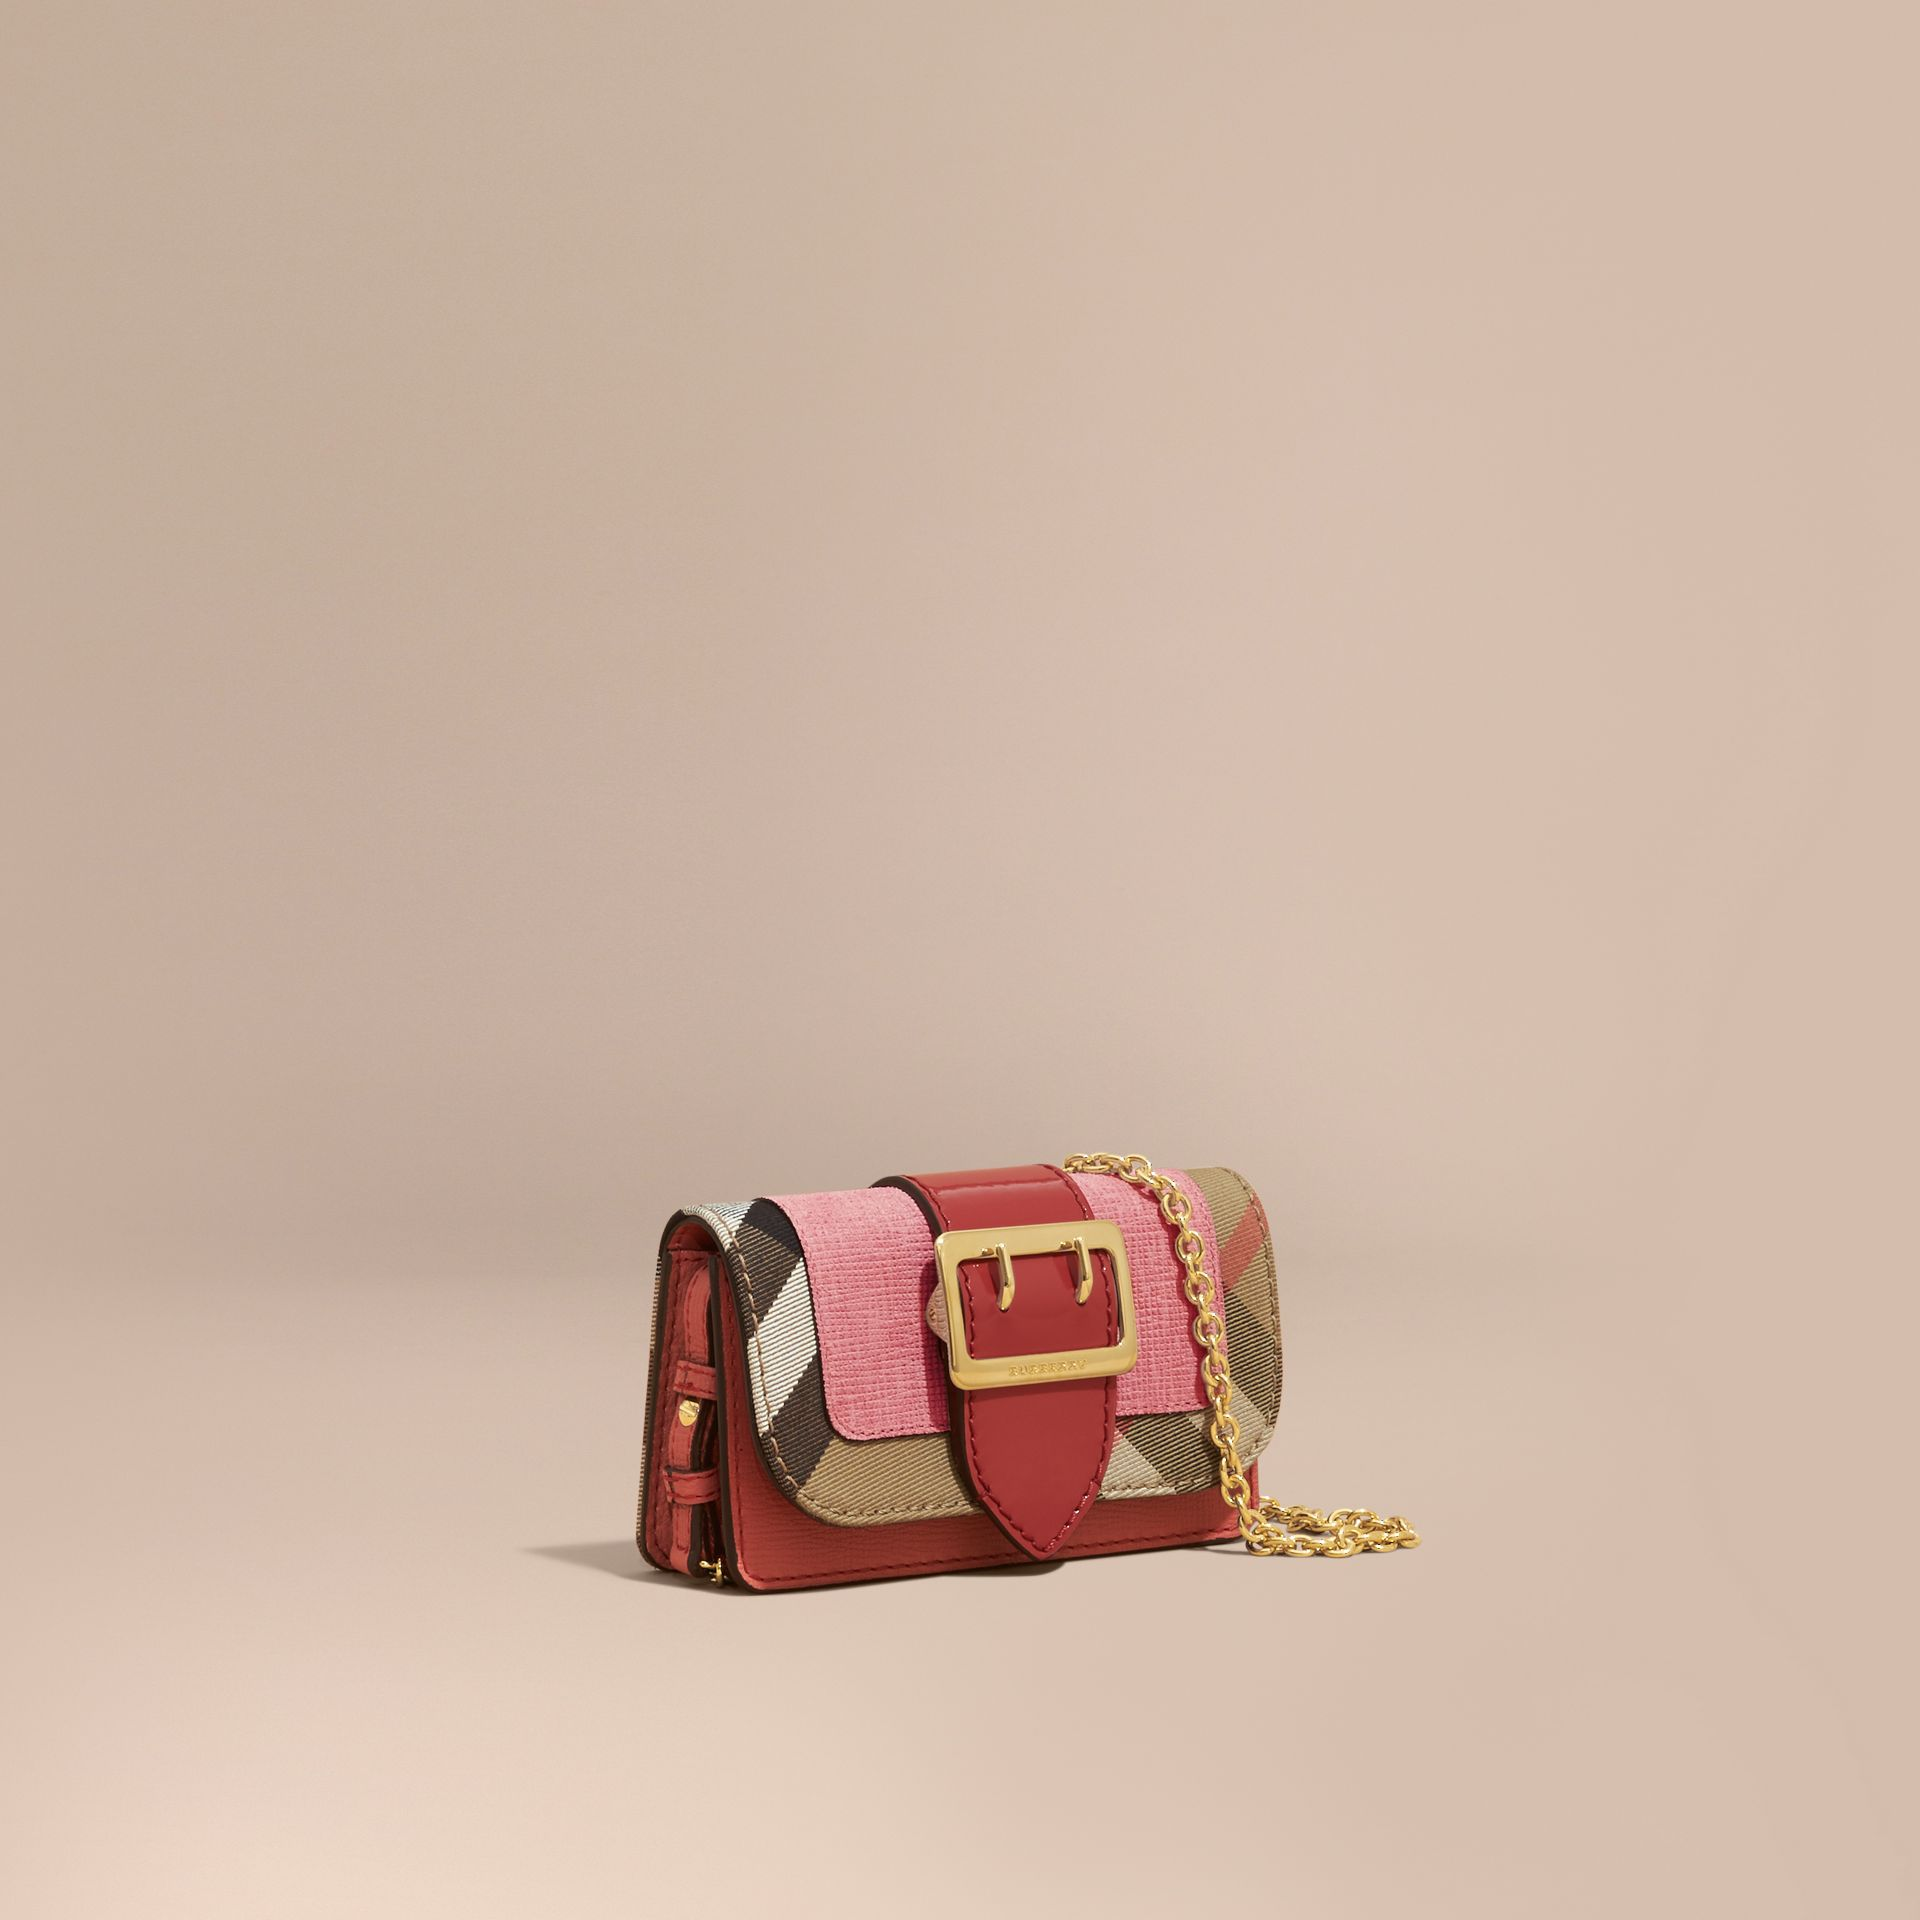 Rose pink The Mini Buckle Bag in Leather and House Check Rose Pink - gallery image 1